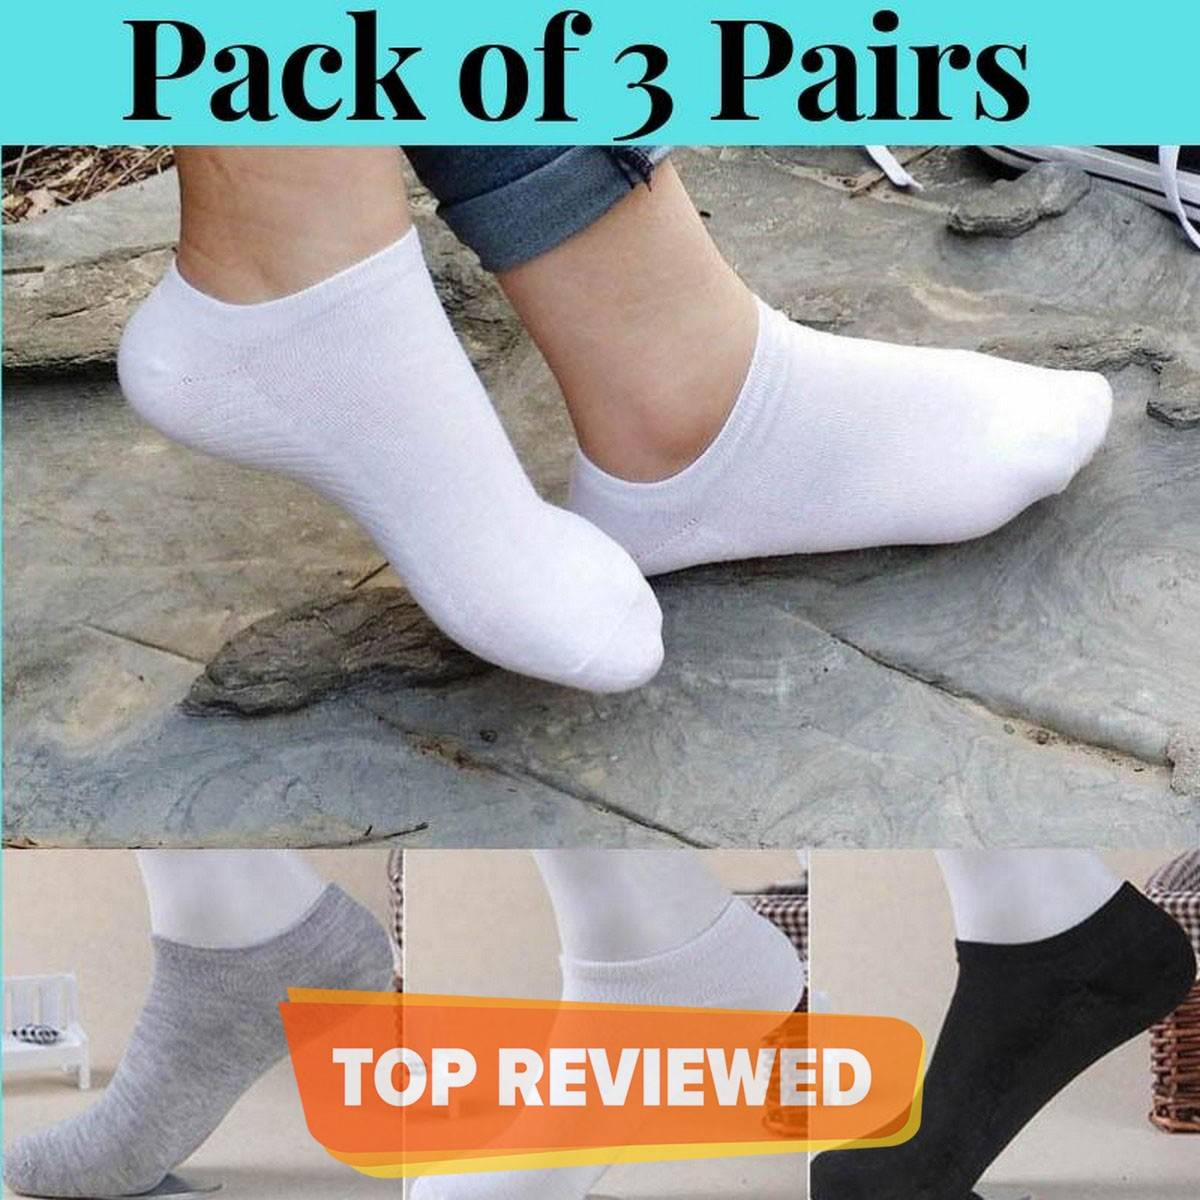 3 - 6 - 12 - 24 Pairs for Men and Women - Cotton Loafer Low Cut Socks